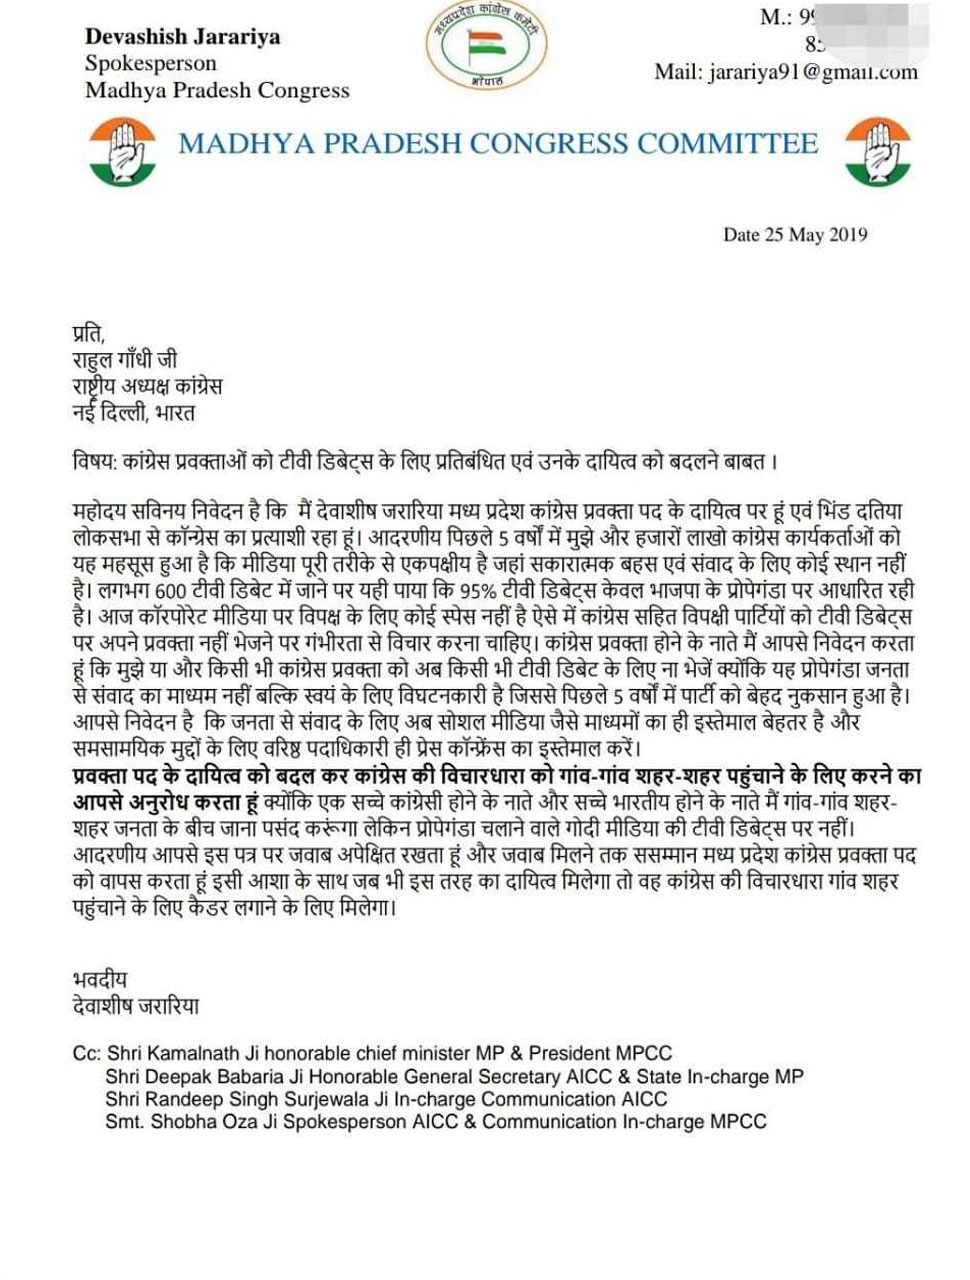 This letter banned Congress spokespersons going to TV debate